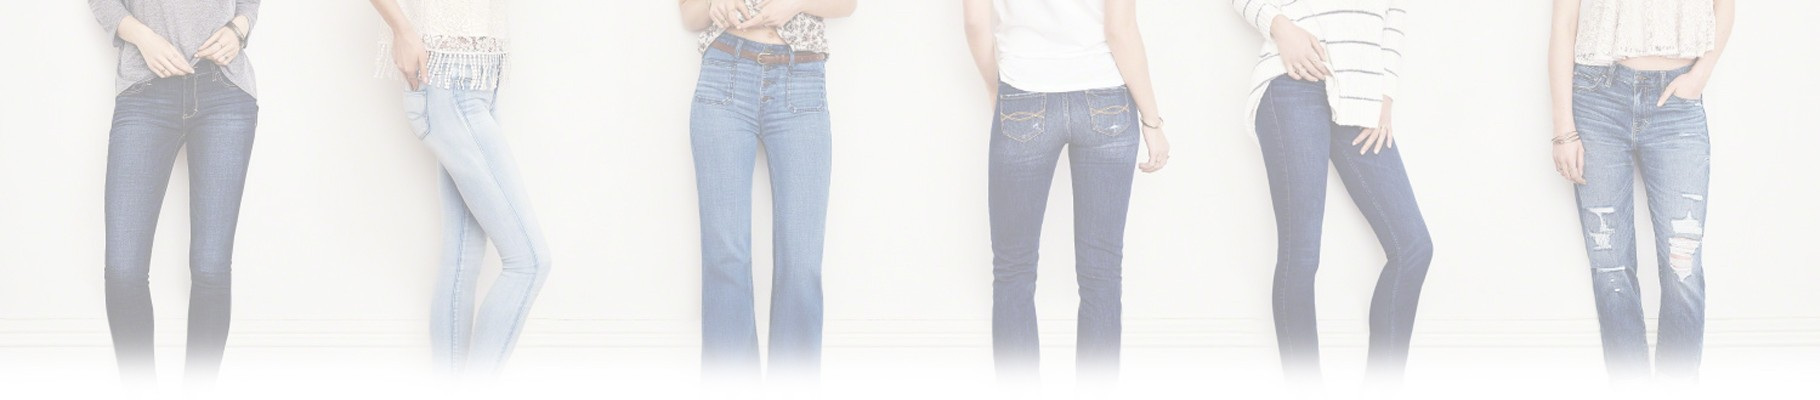 Women's jeans are a piece of clothing most loved by all women